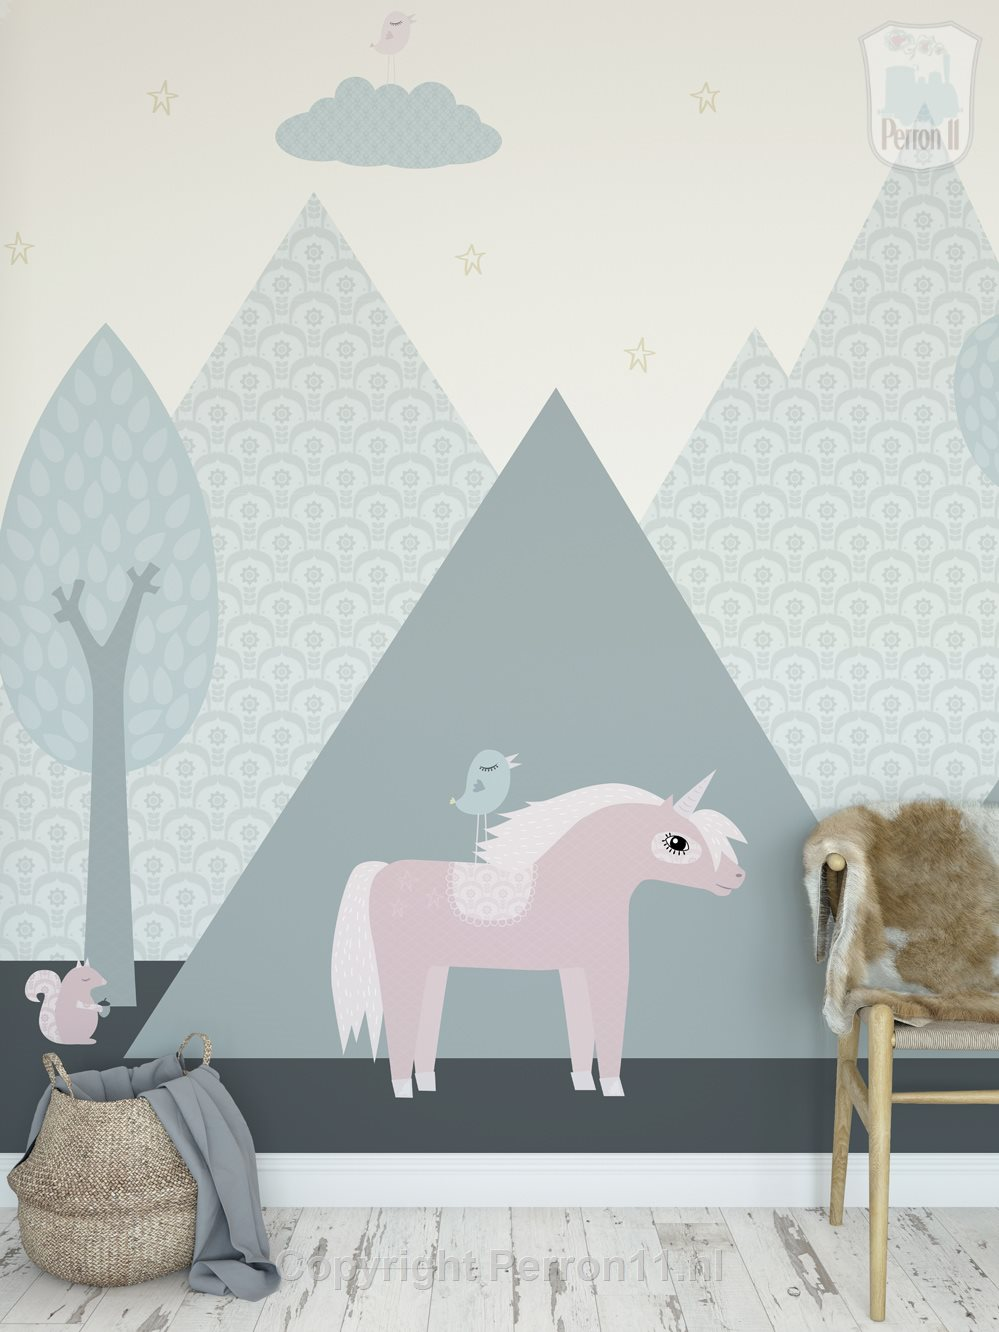 unicorn wallpaper mural in the children's room with rattan and wicker basket